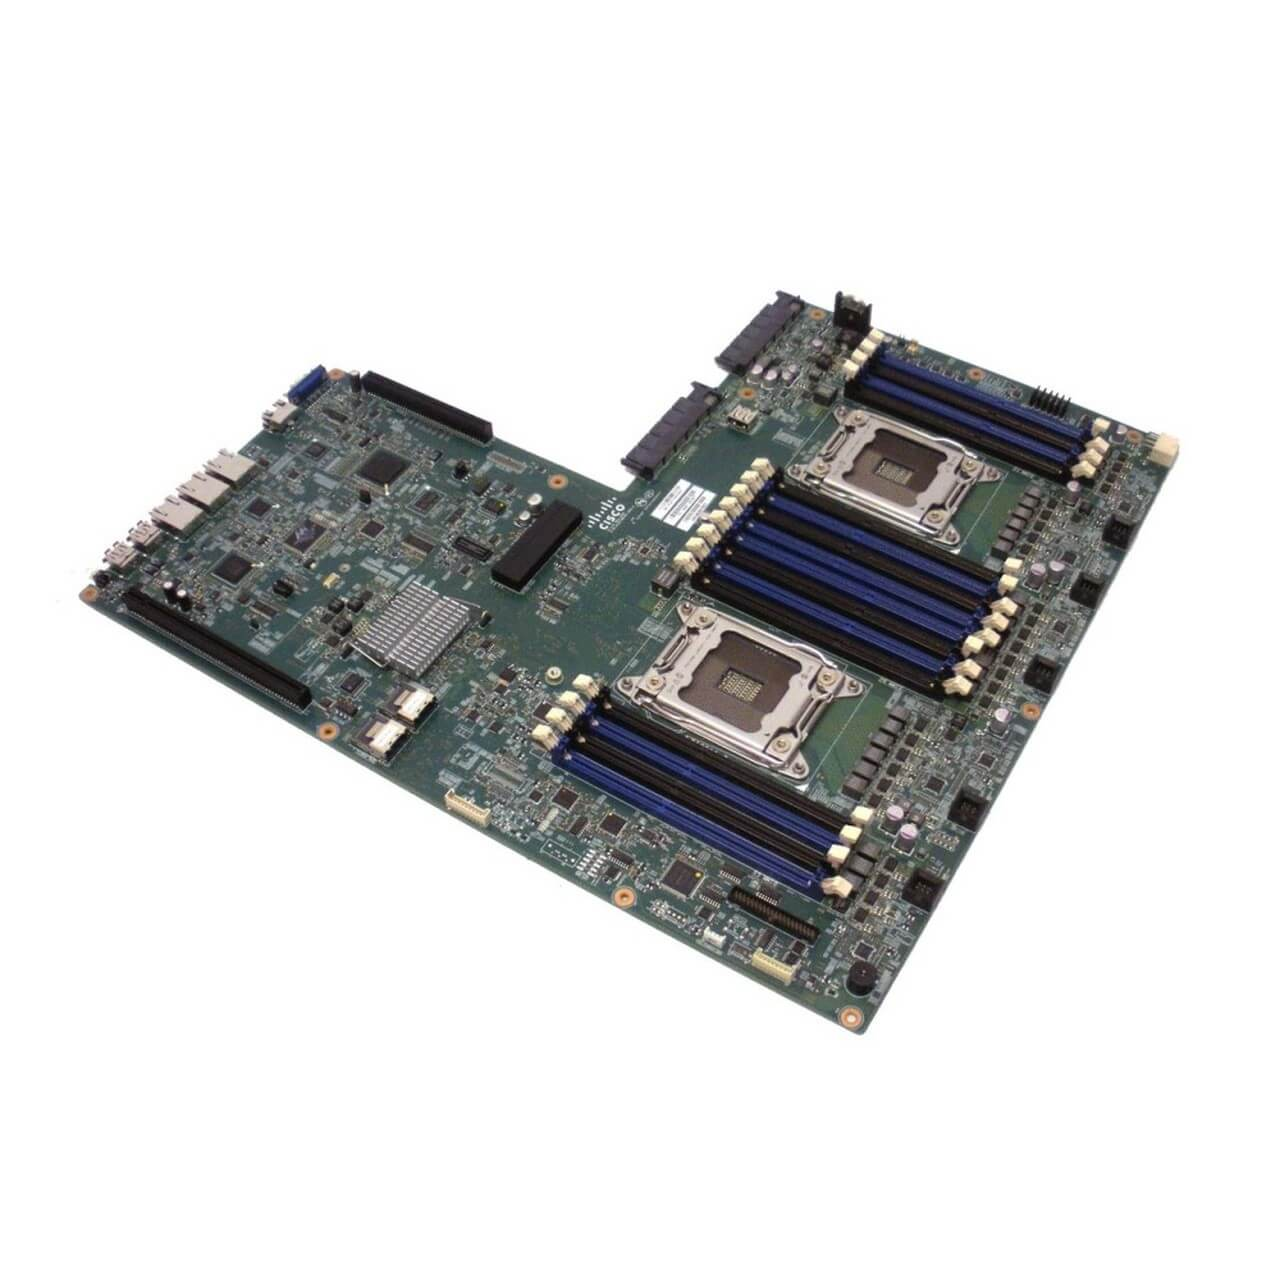 Buy & save on refurbished Cisco server system boards from your trusted partners at Flagship Technologies.